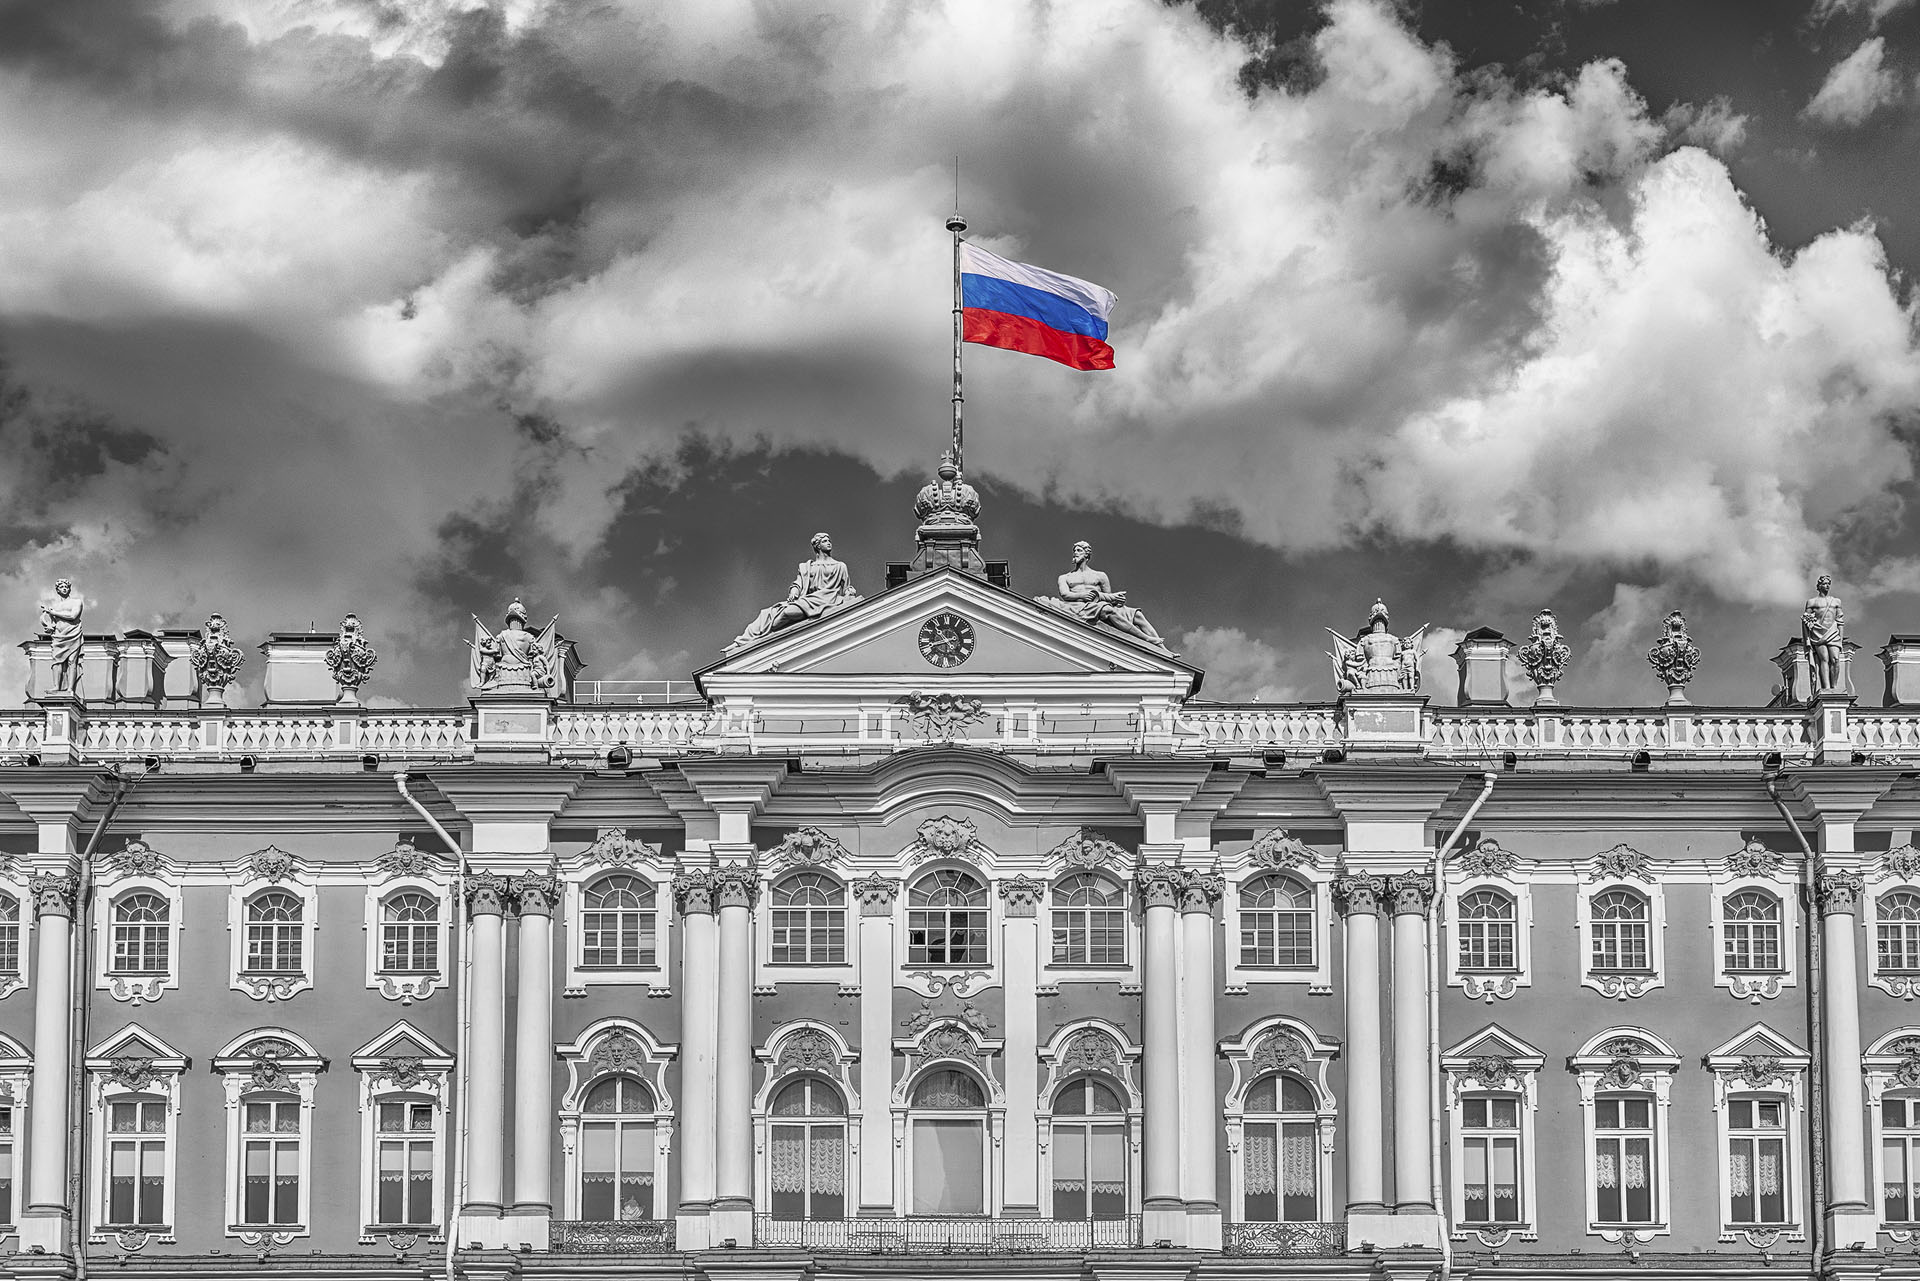 Facade of the Winter Palace, Hermitage Museum, St. Petersburg, Russia